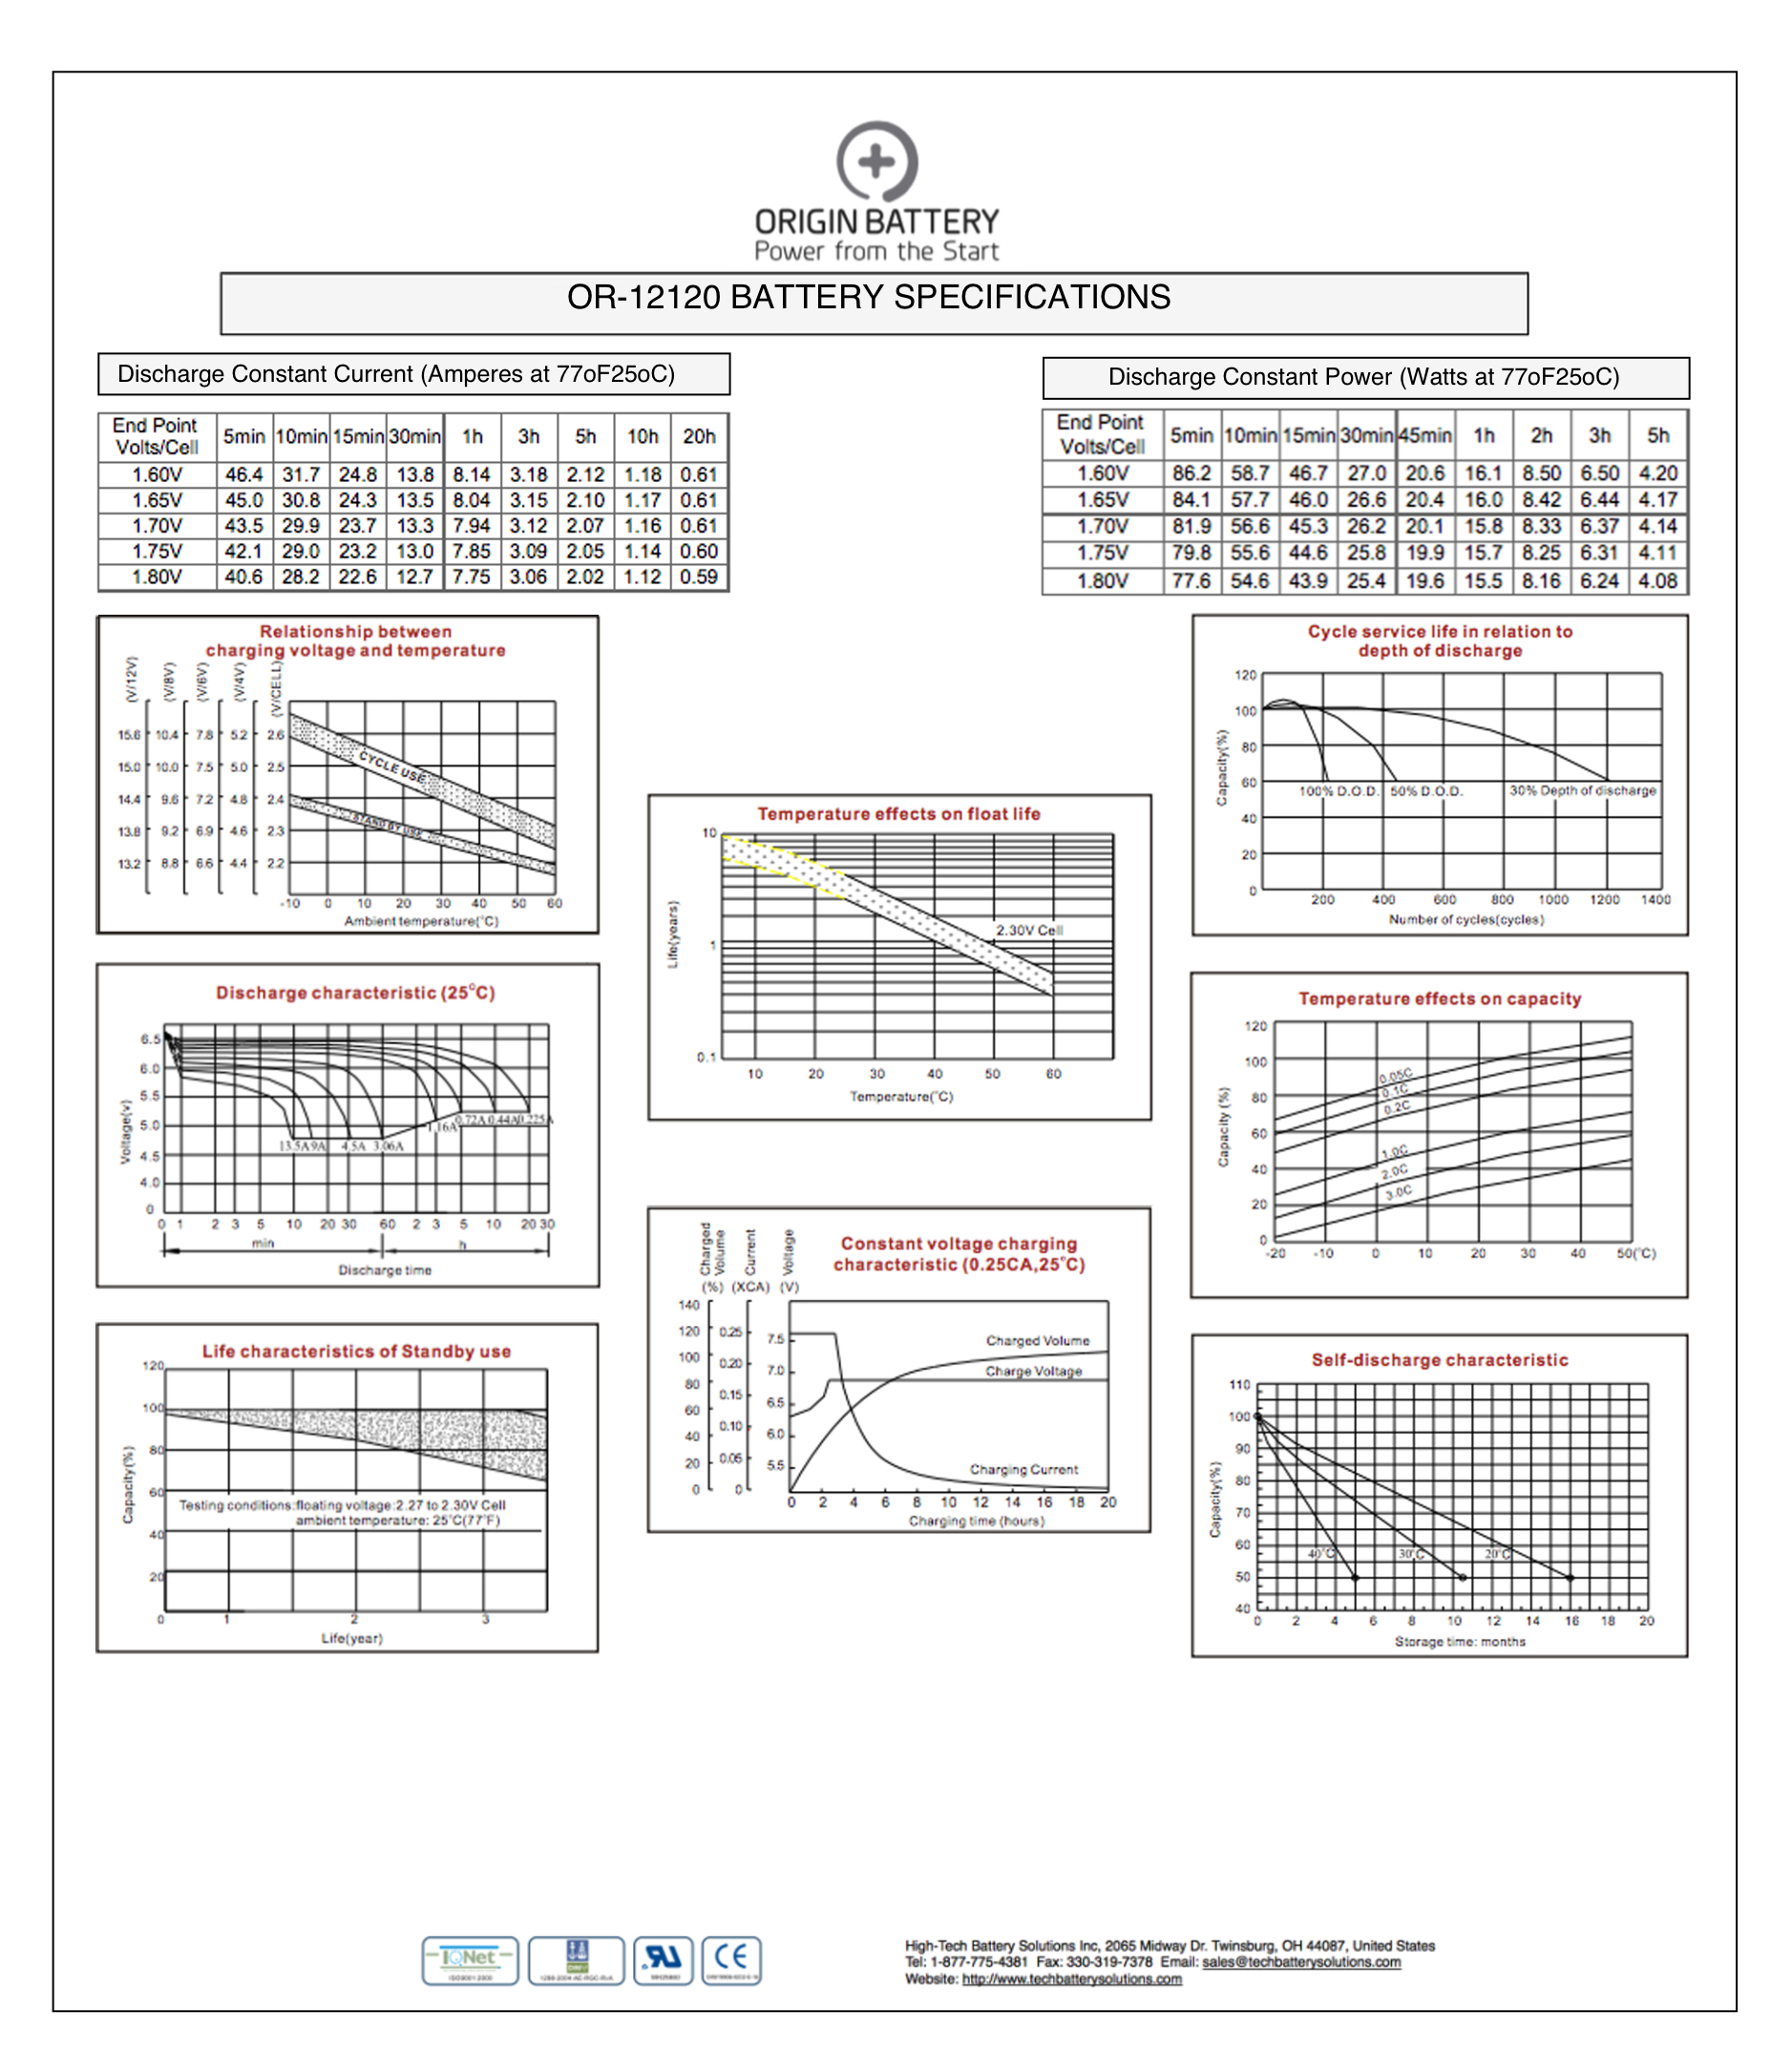 OR-12120 Charts